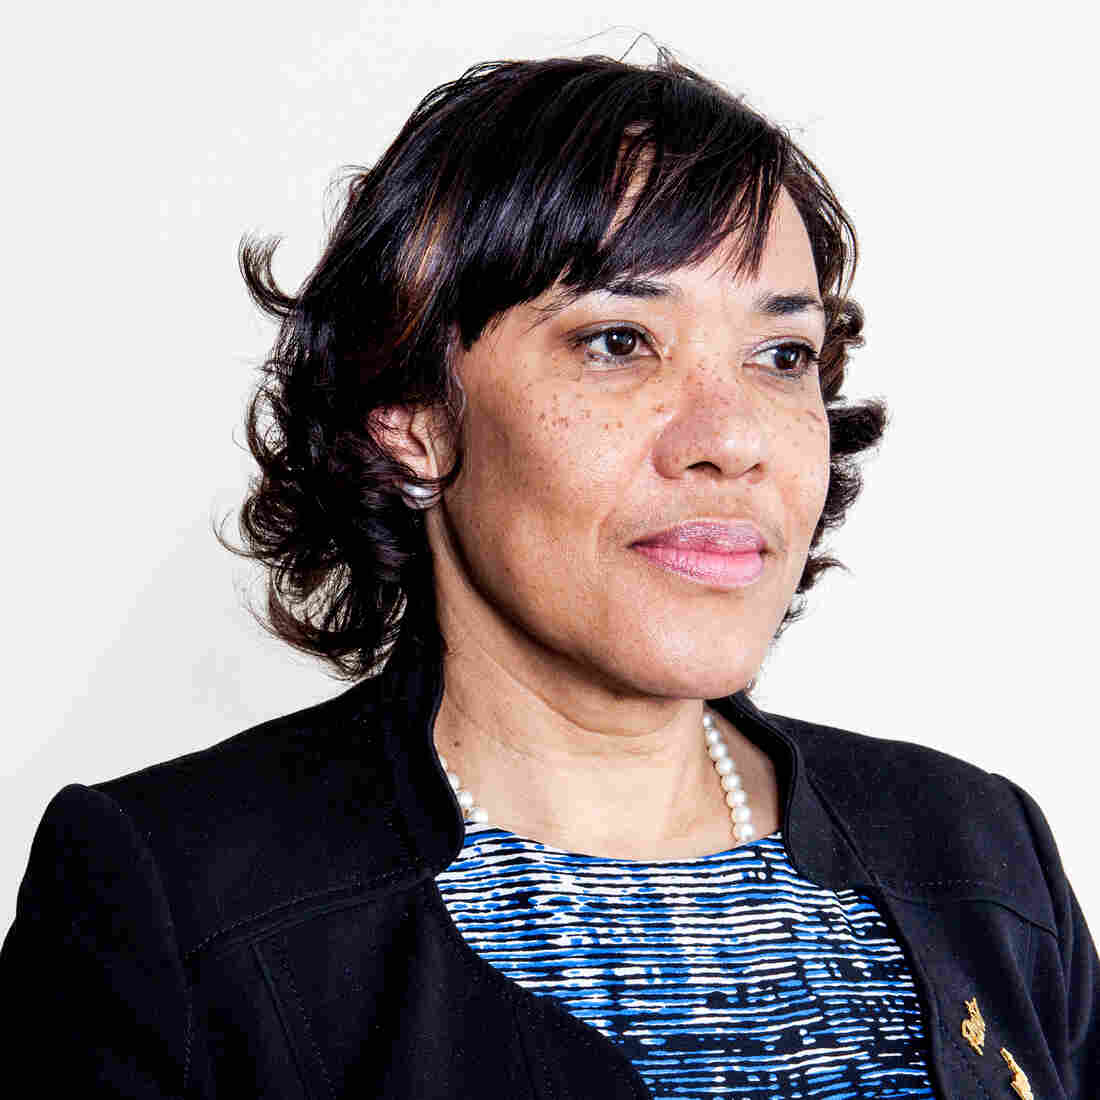 Karen Weaver was elected mayor of Flint, Mich., after promising to address the city's water-contamination issues.